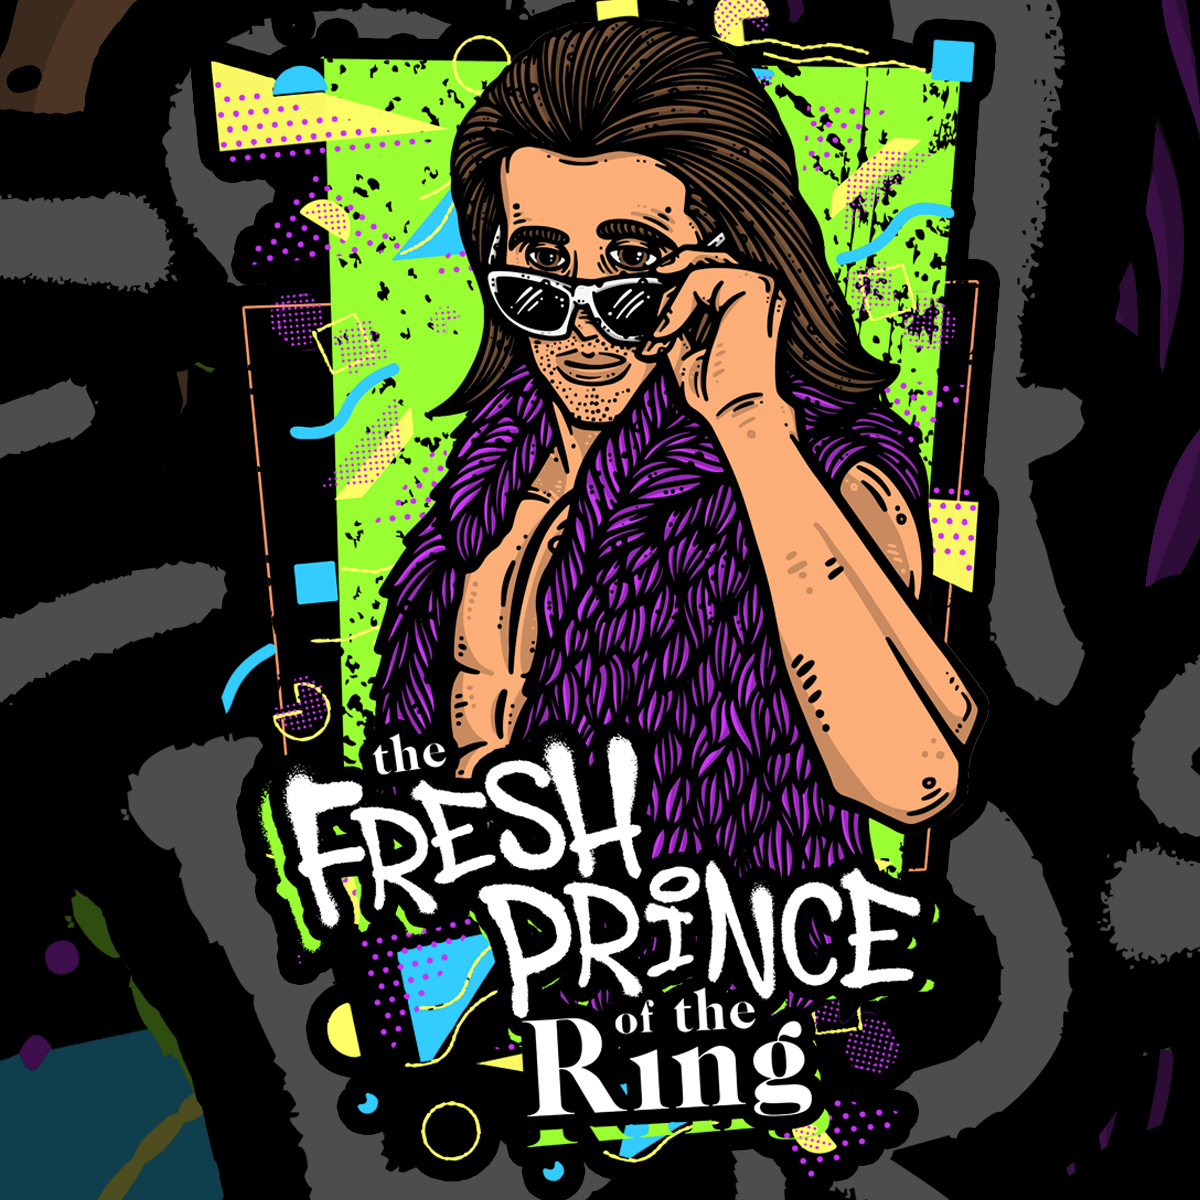 had some fun putting together this rad #90sstyle design for an #indywrestler   #prowrestling #prowrestler #indywrestling #wwe #nxt #aew #allelitewrestling #freshprince #willsmith #savedbythebell #cartoonist #illustration #cartoons #freelancegraphicdesigner